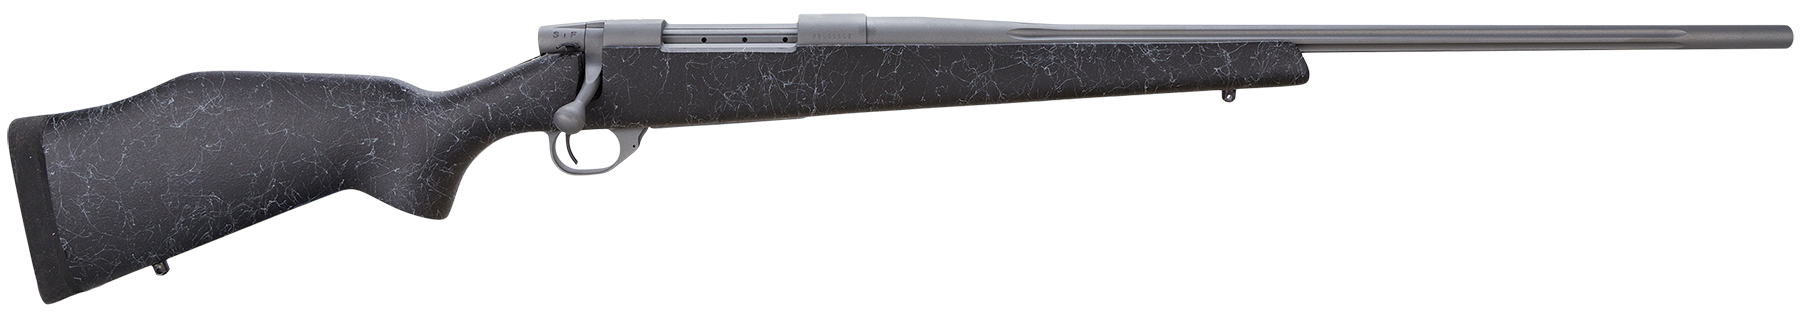 Weatherby Vanguard Back Country 270 Win 24